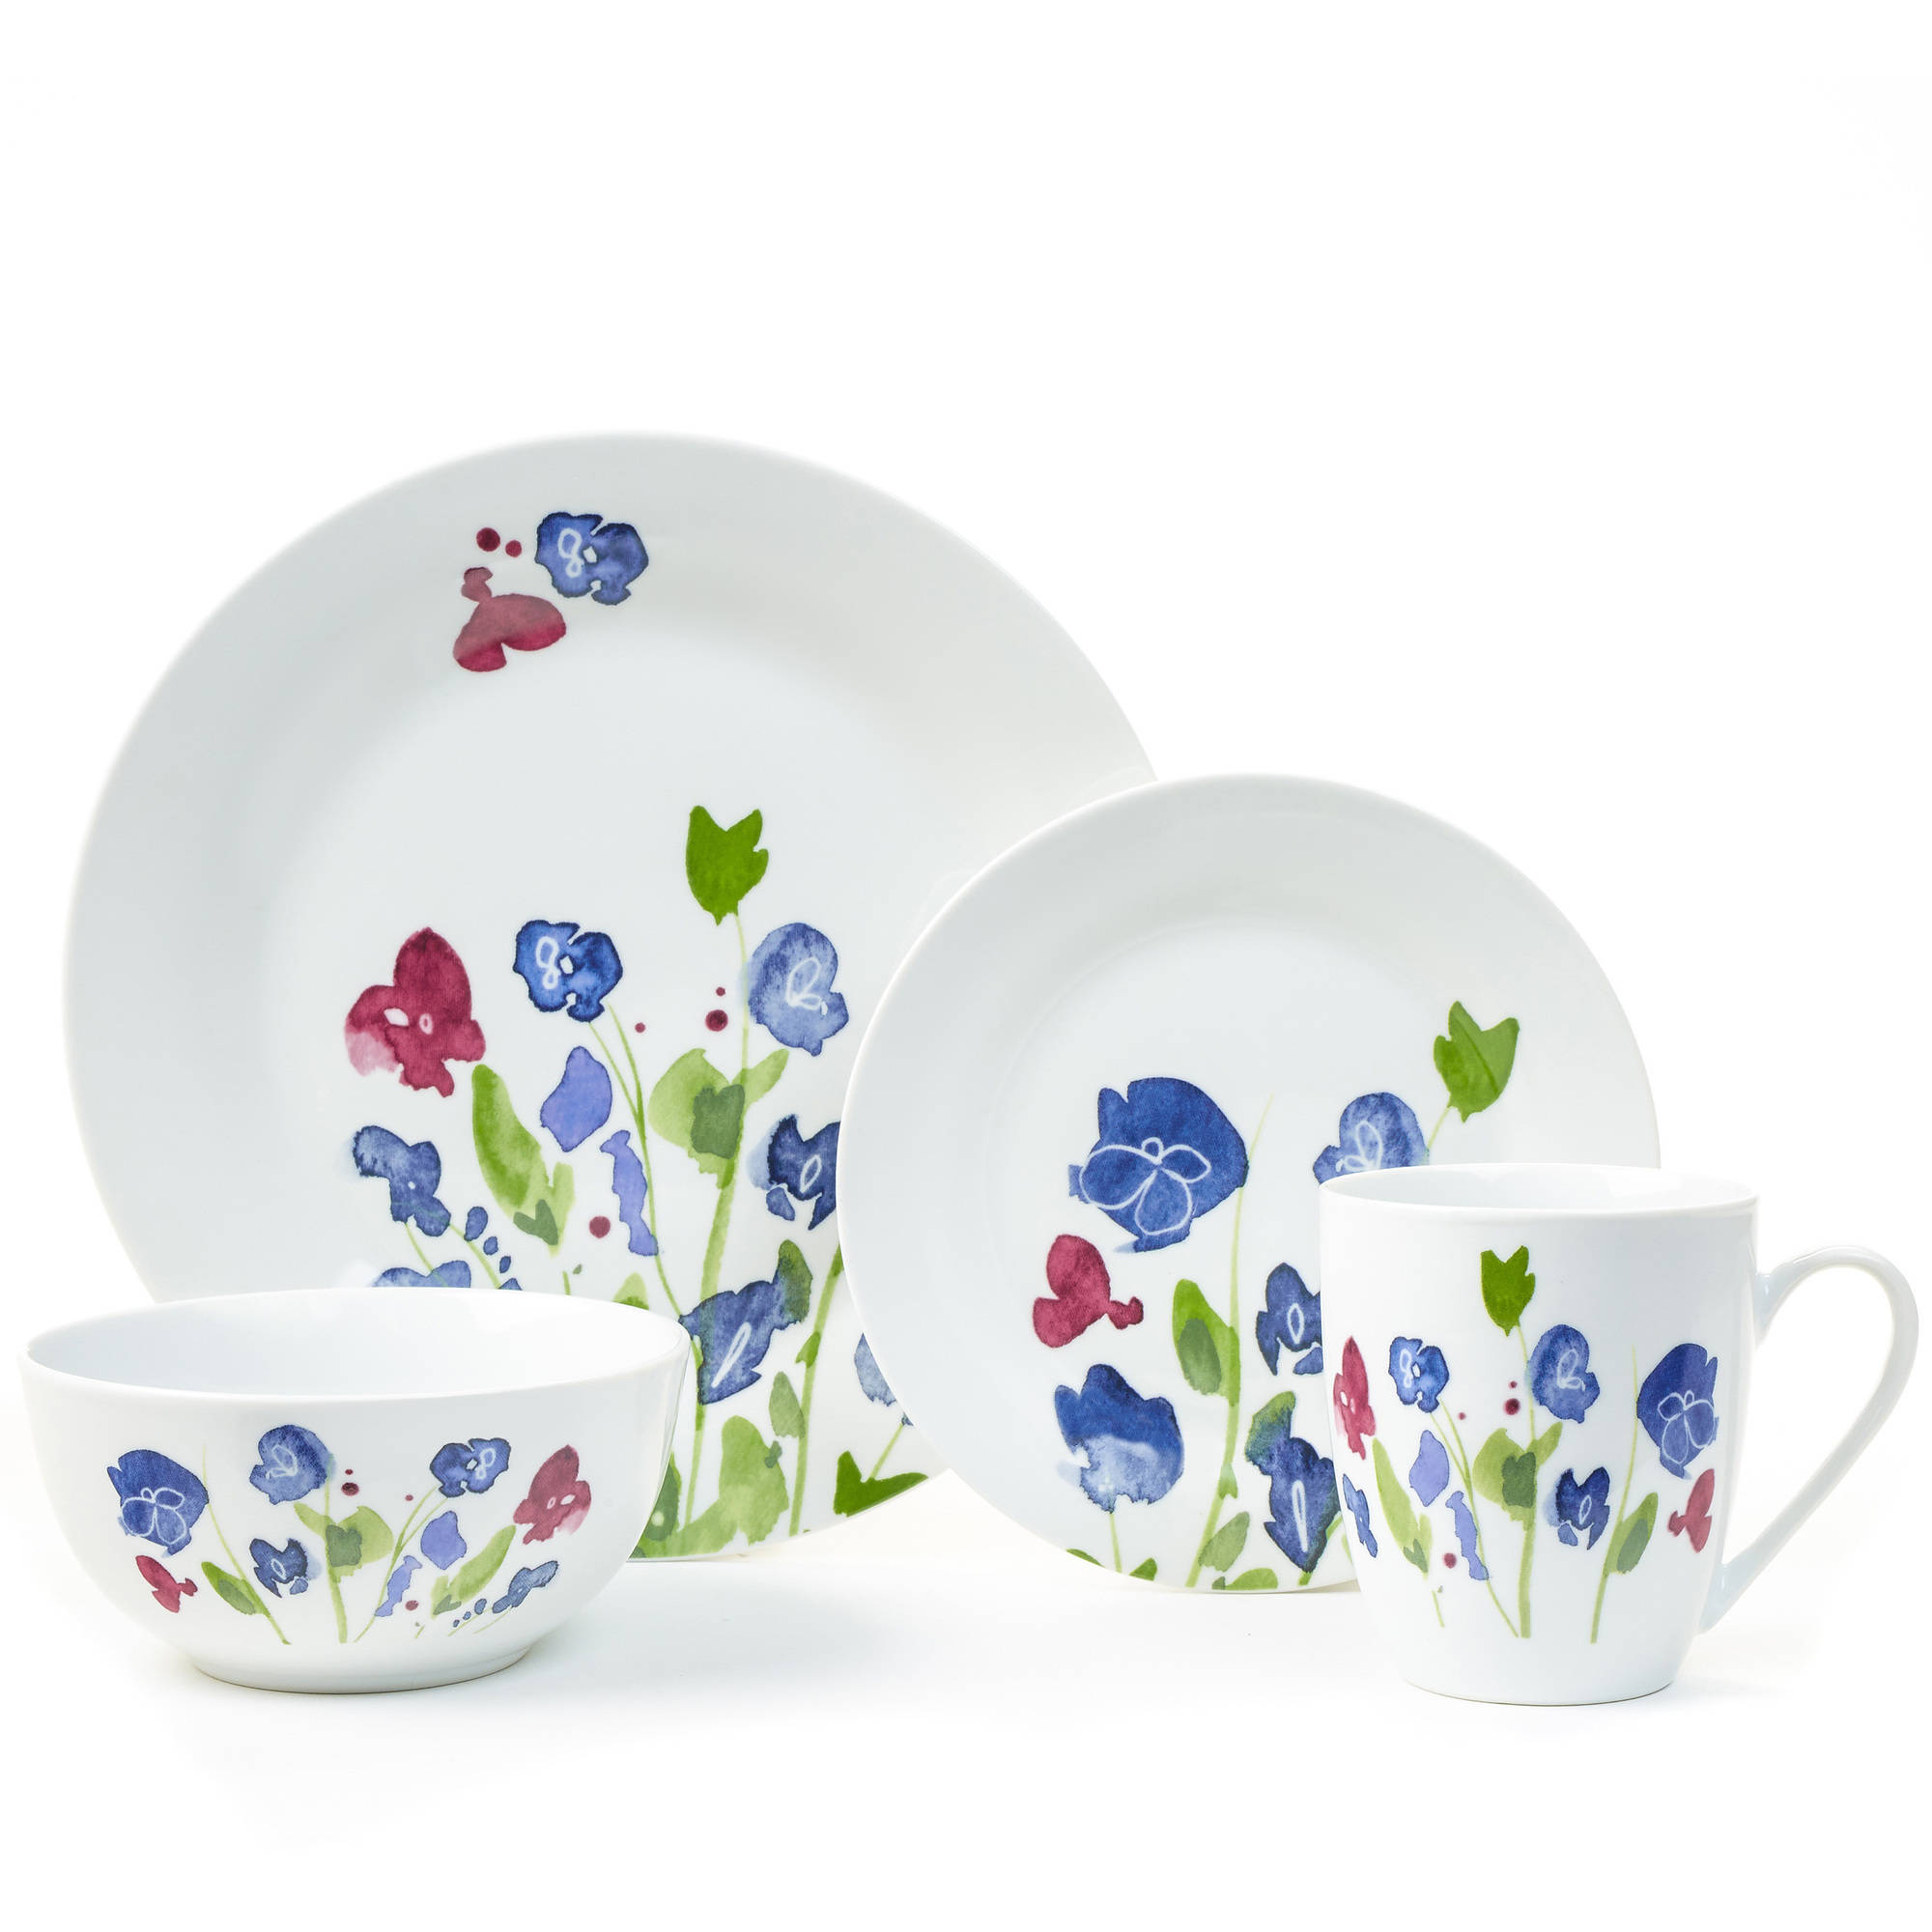 Placemate My Romantic 16-Piece Porcelain Dinnerware Set, Blue